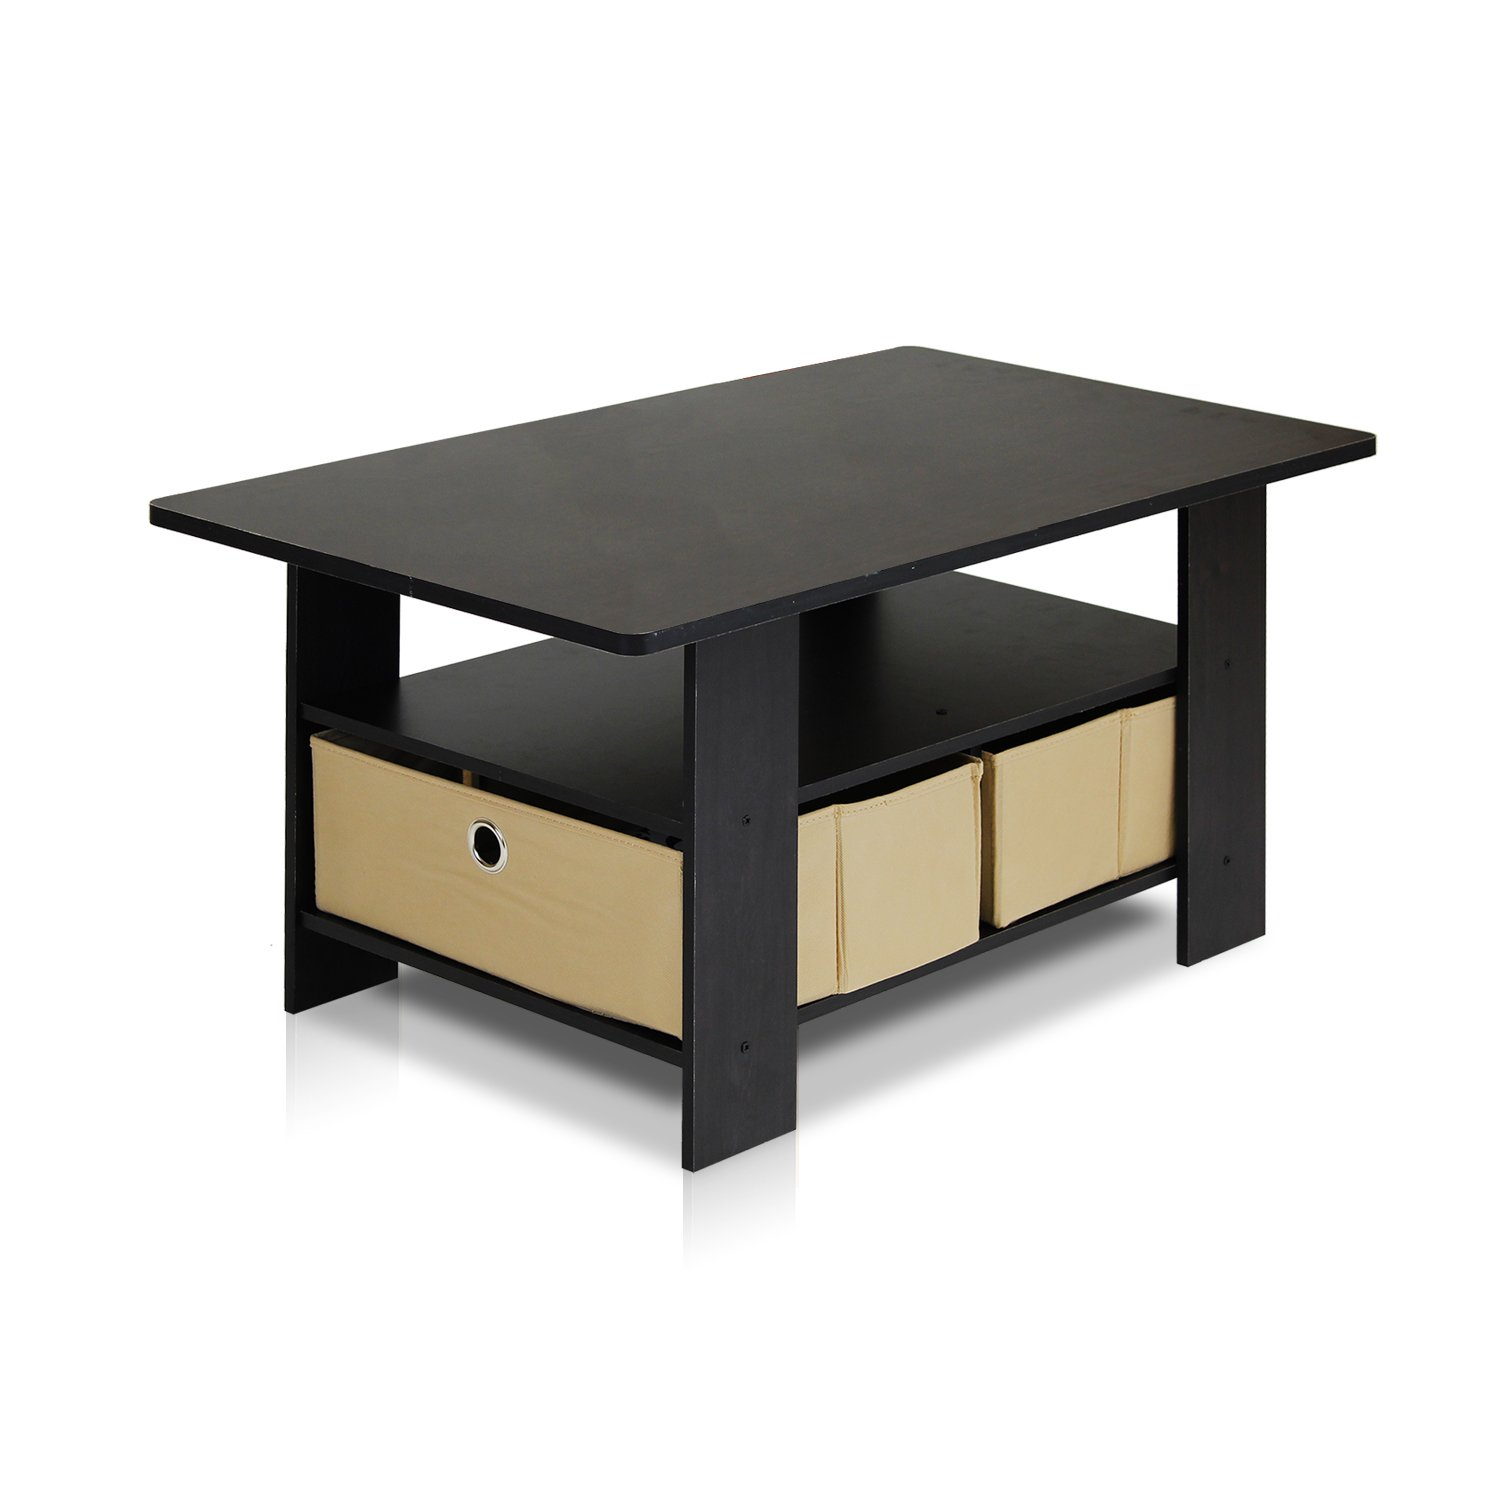 Amazon.com: Furinno 11158EX/BR Coffee Table with Bins, Espresso ...